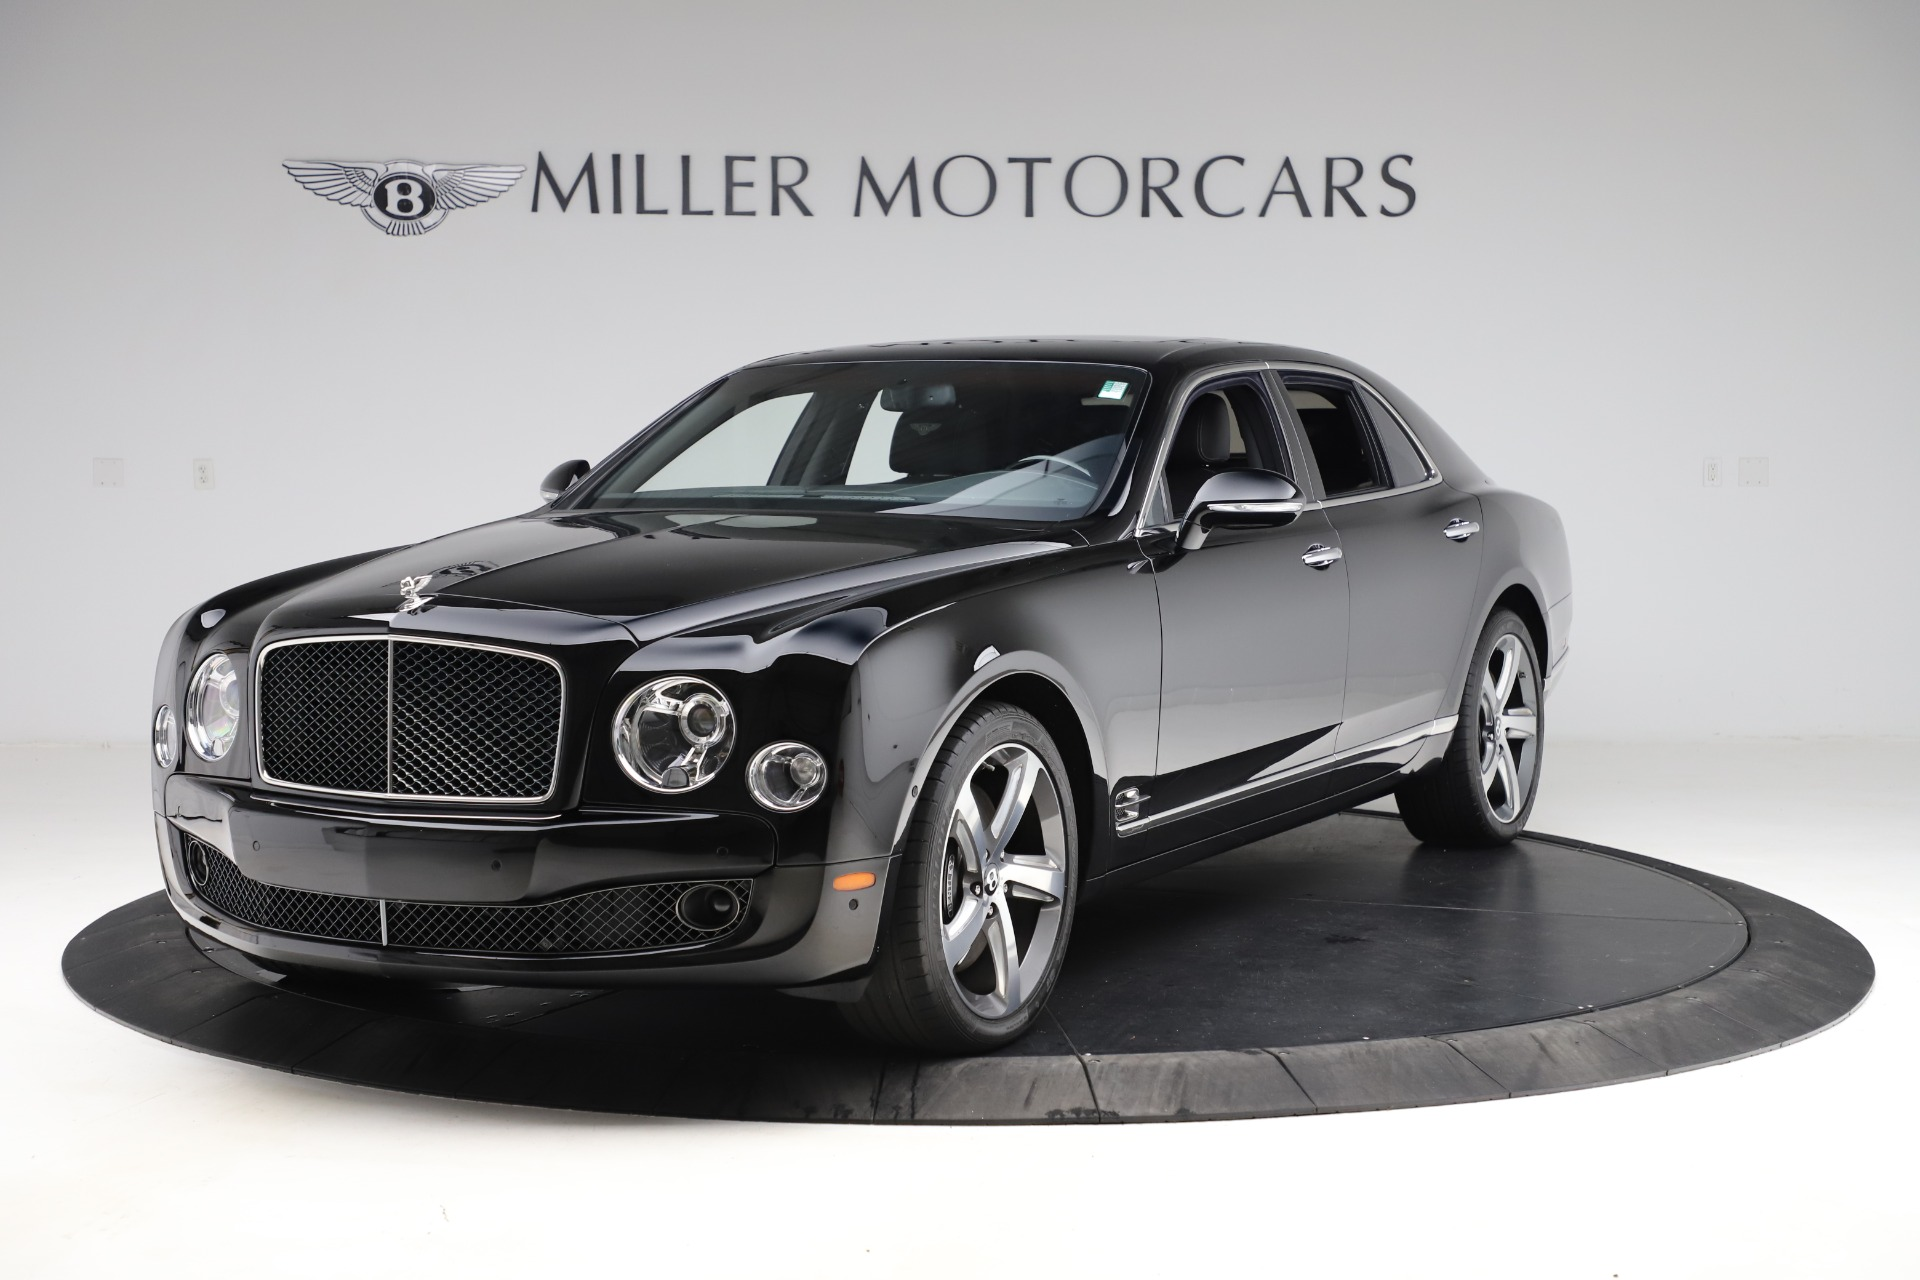 New 2016 Bentley Mulsanne Speed for sale $157,900 at Bentley Greenwich in Greenwich CT 06830 1